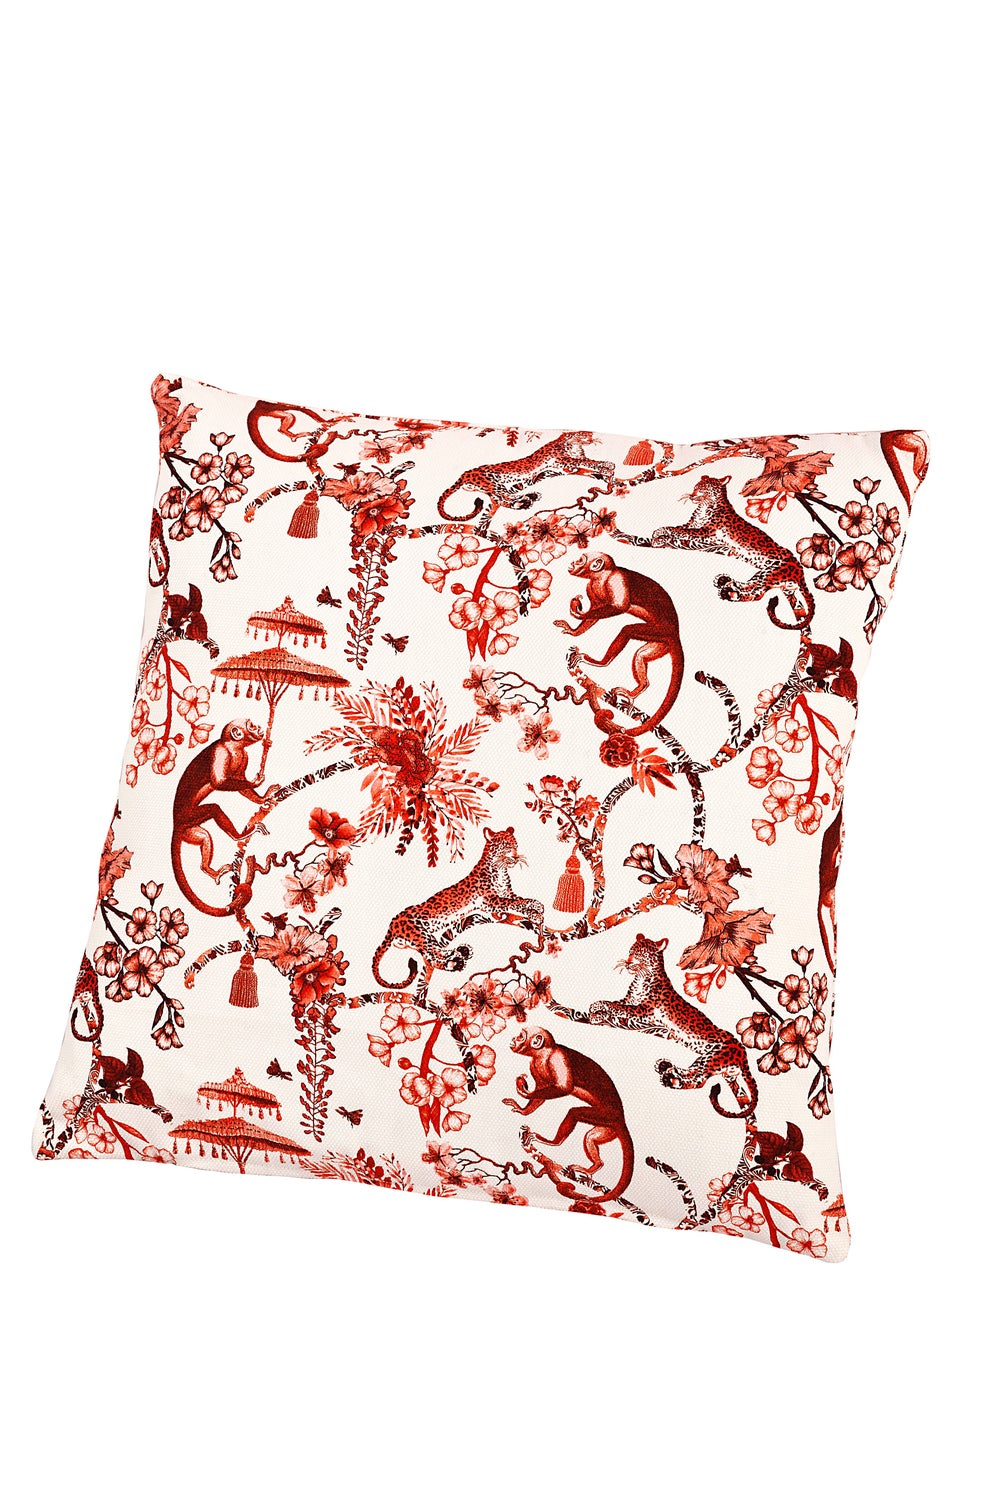 Image of Fodera per cuscino Chinoiserie - Chinoiserie cushion cover